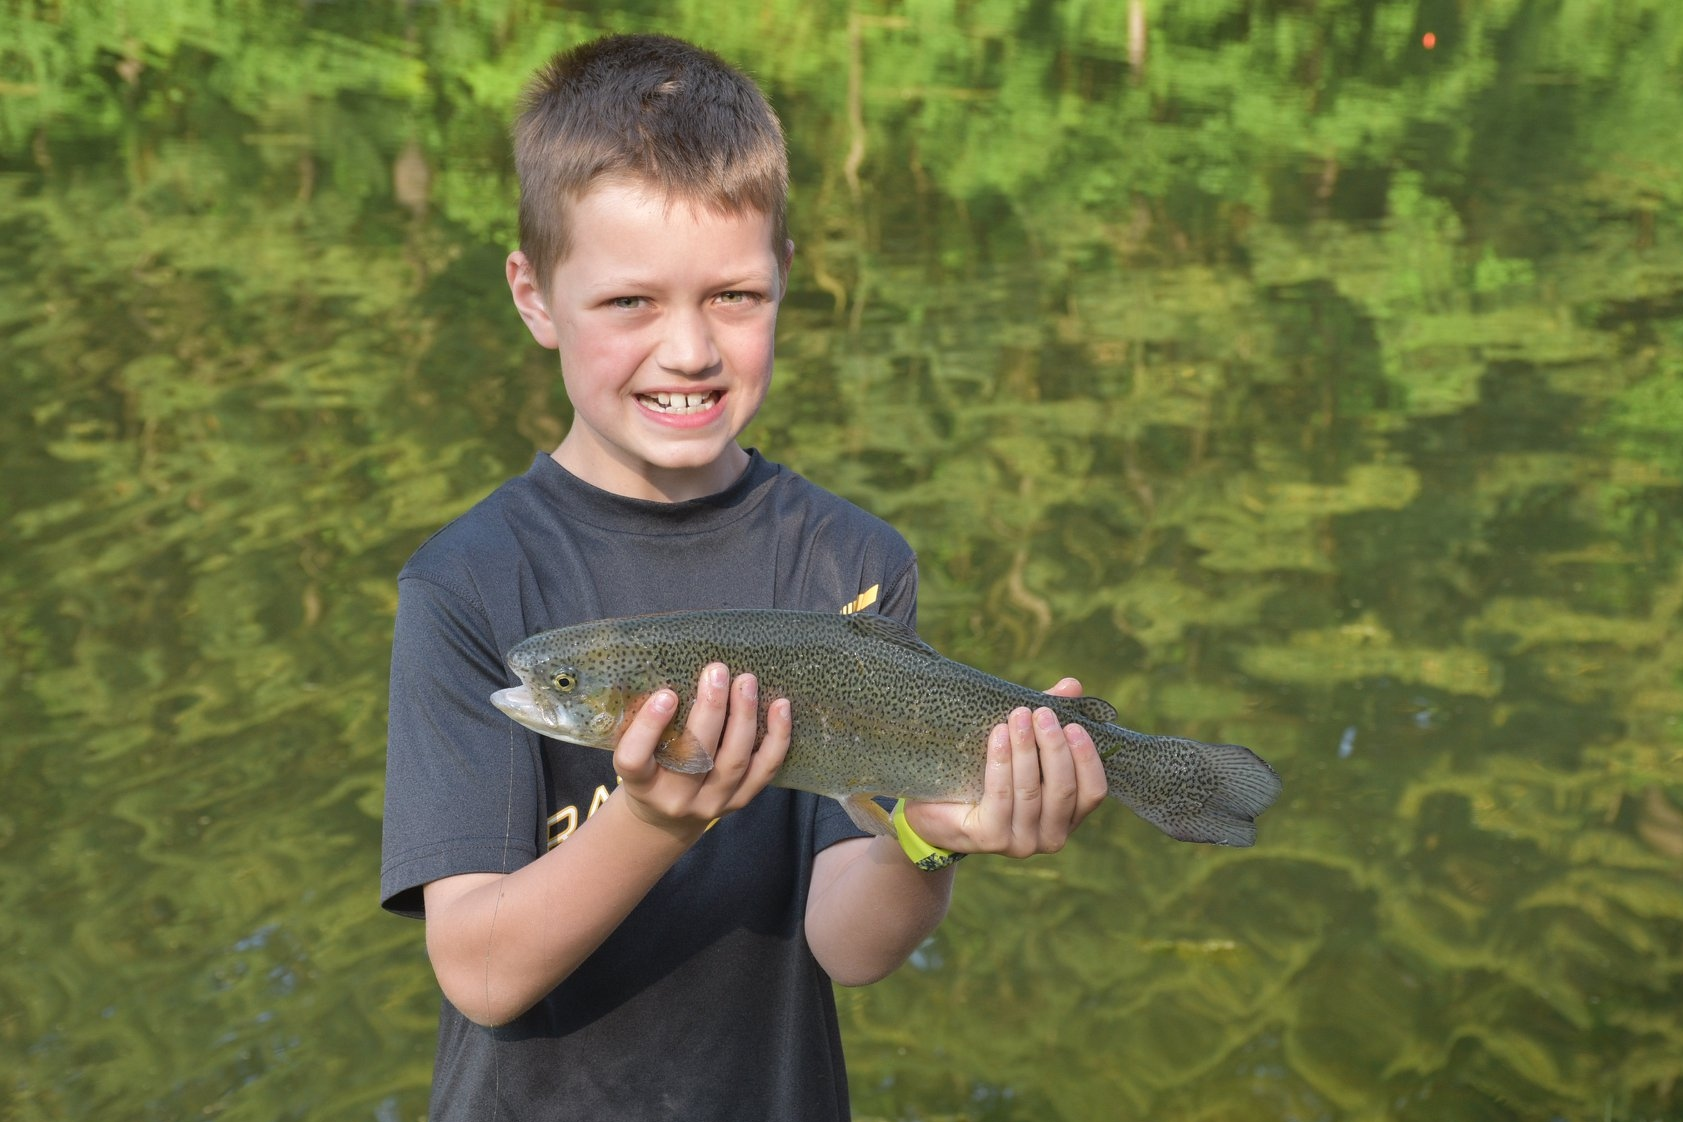 NATURE IN THE PARKS: FISHING 101